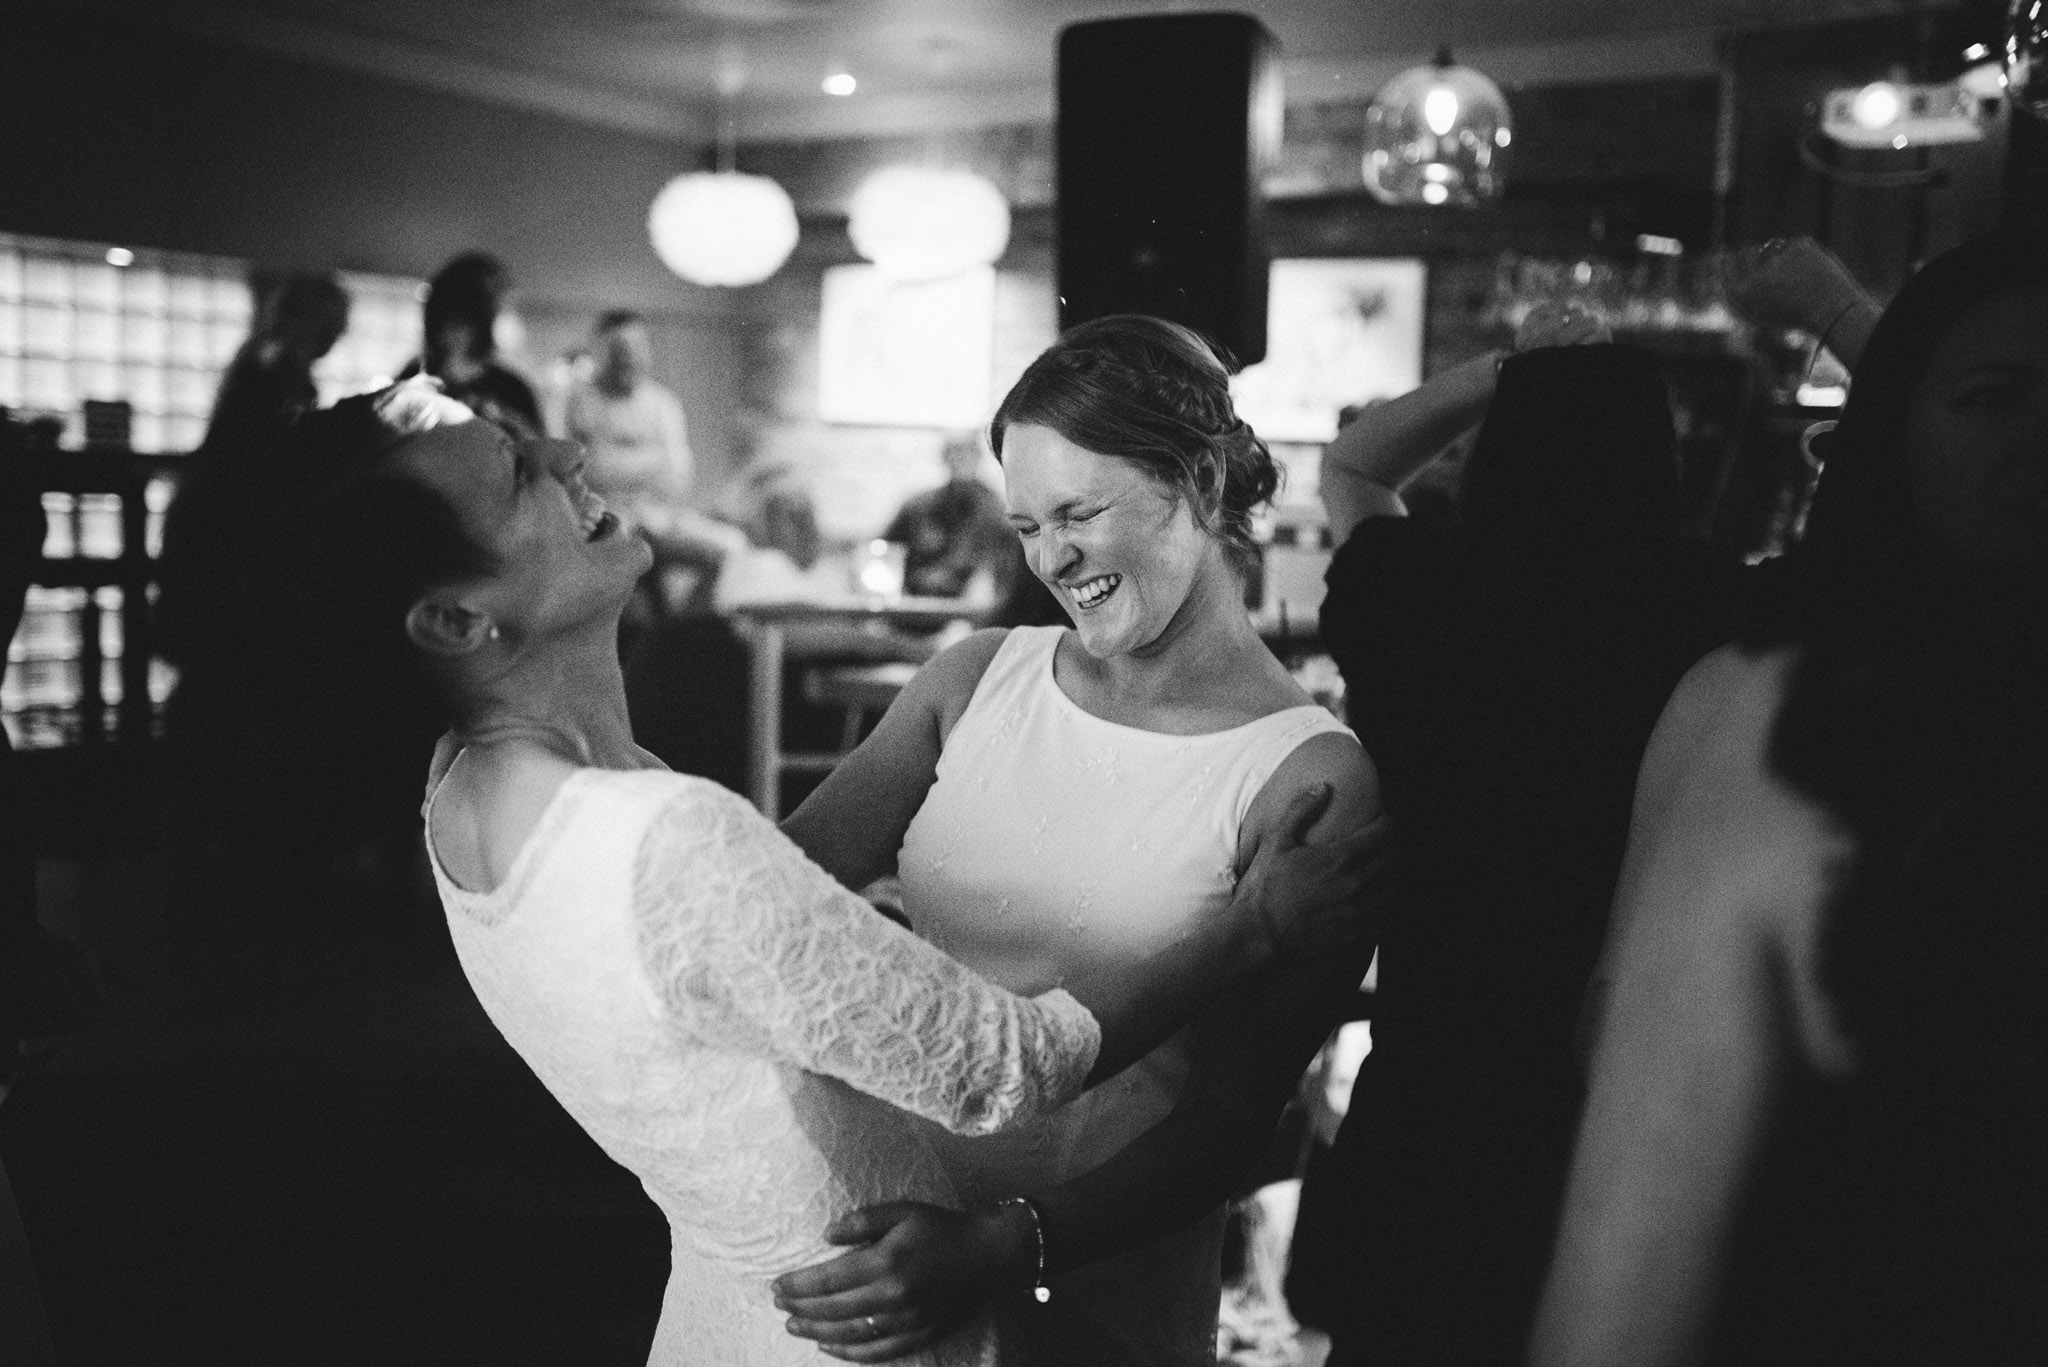 scott-stockwell-photography-wedding-photographer-the-square-club-bristol368.jpg